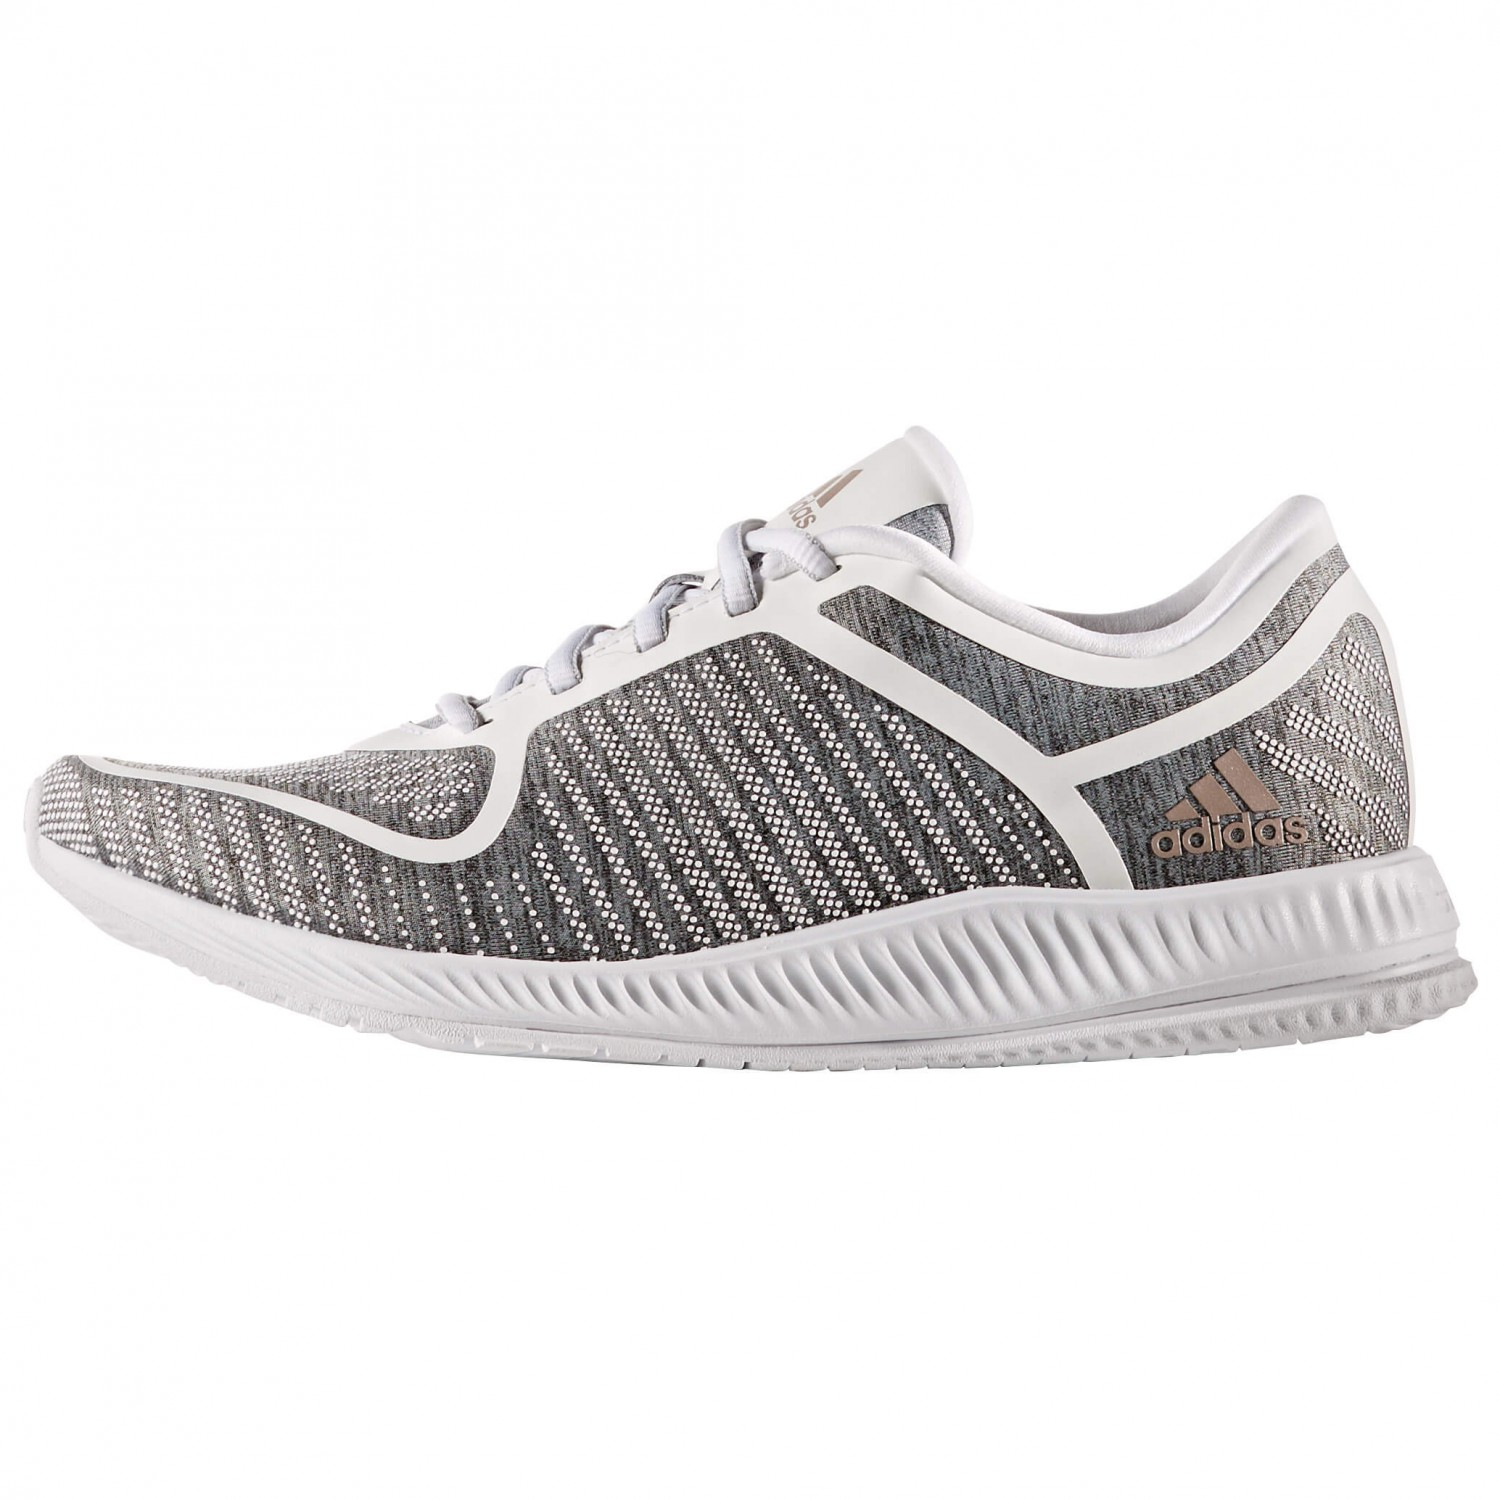 adidas Women's Athletics Bounce Fitnessschuh Fitnessschuhe